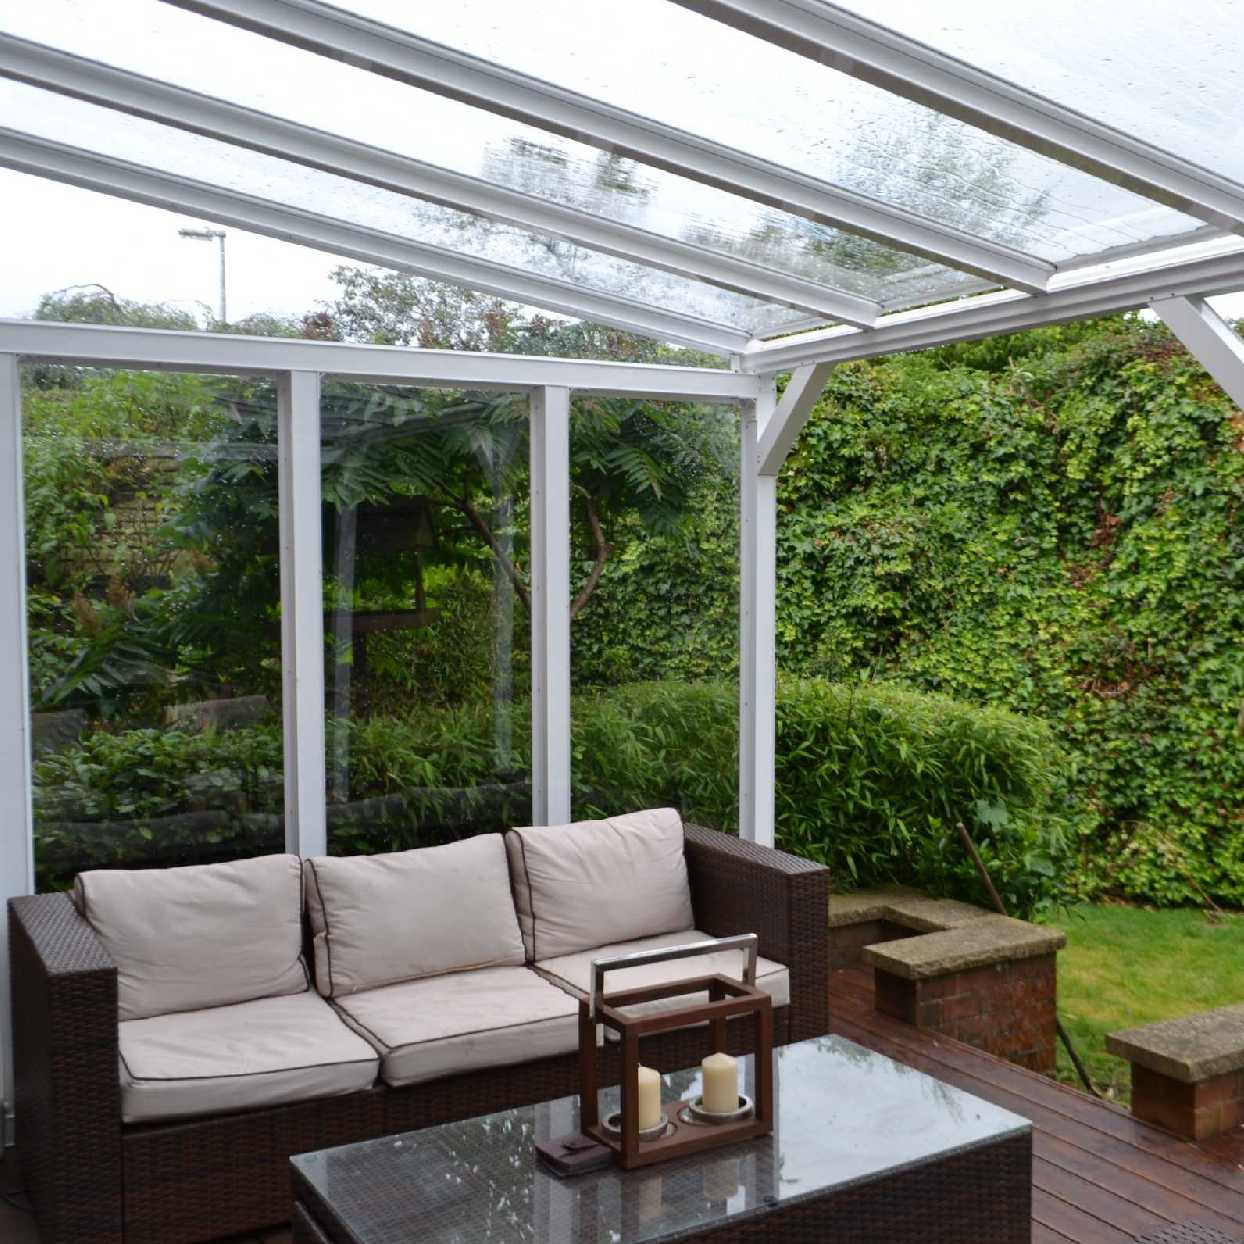 Great selection of Omega Smart White Lean-To Canopy with 16mm Polycarbonate Glazing - 4.8m (W) x 4.5m (P), (3) Supporting Posts